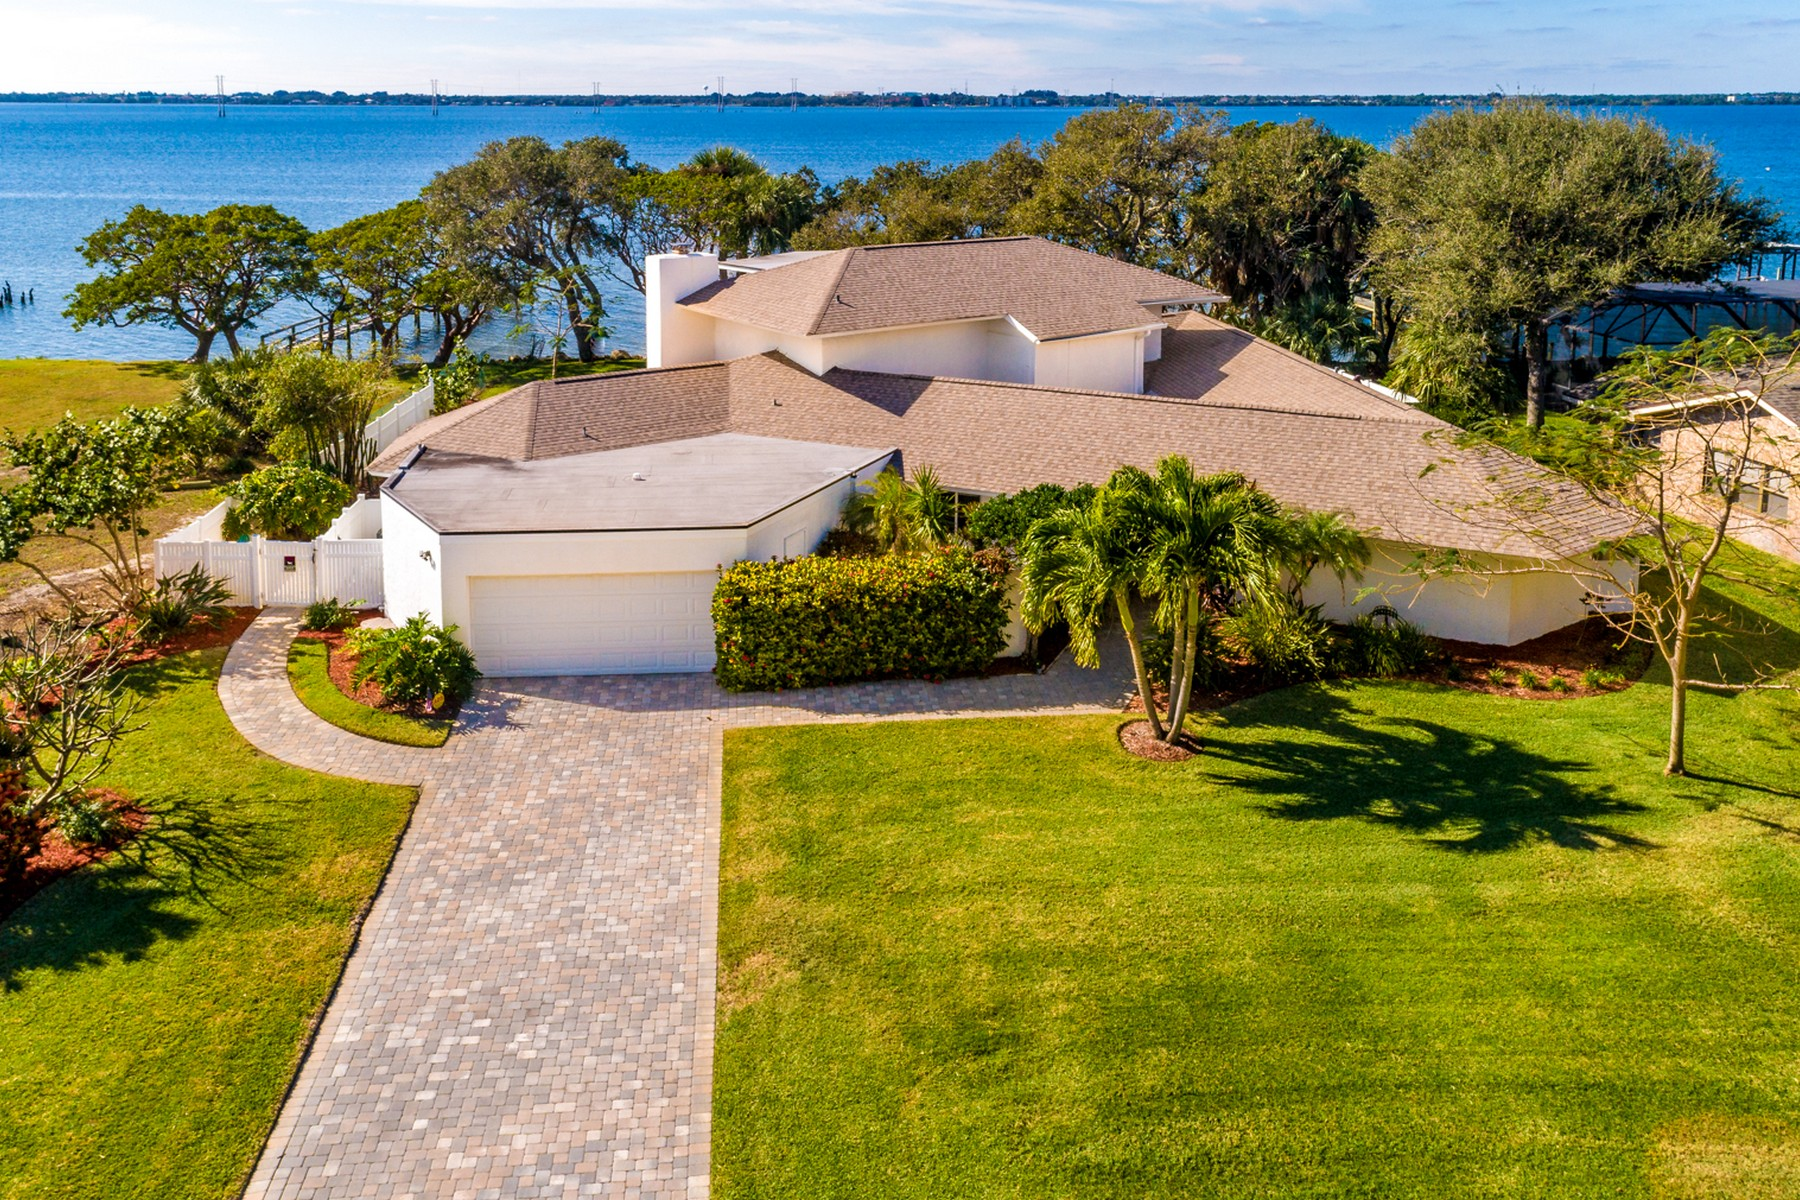 Single Family Home for Sale at Large Custom Built Waterfront Pool Home 2160 S River Road Melbourne Beach, Florida 32951 United States